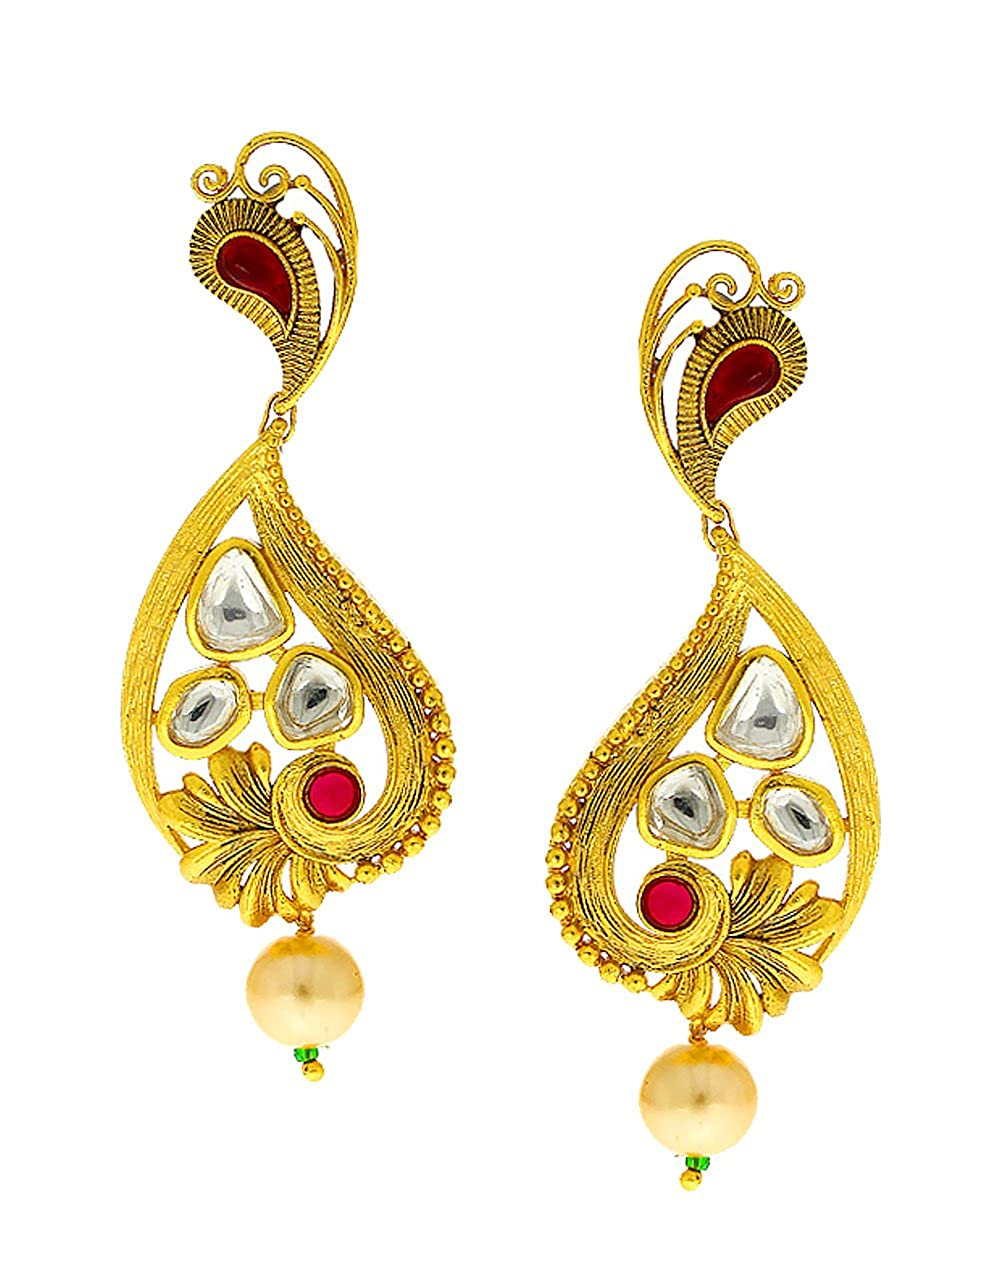 Anuradha Art Gold Finish Styled With Kundan Stylish Designer Traditional Long Earrings For Women//Girls